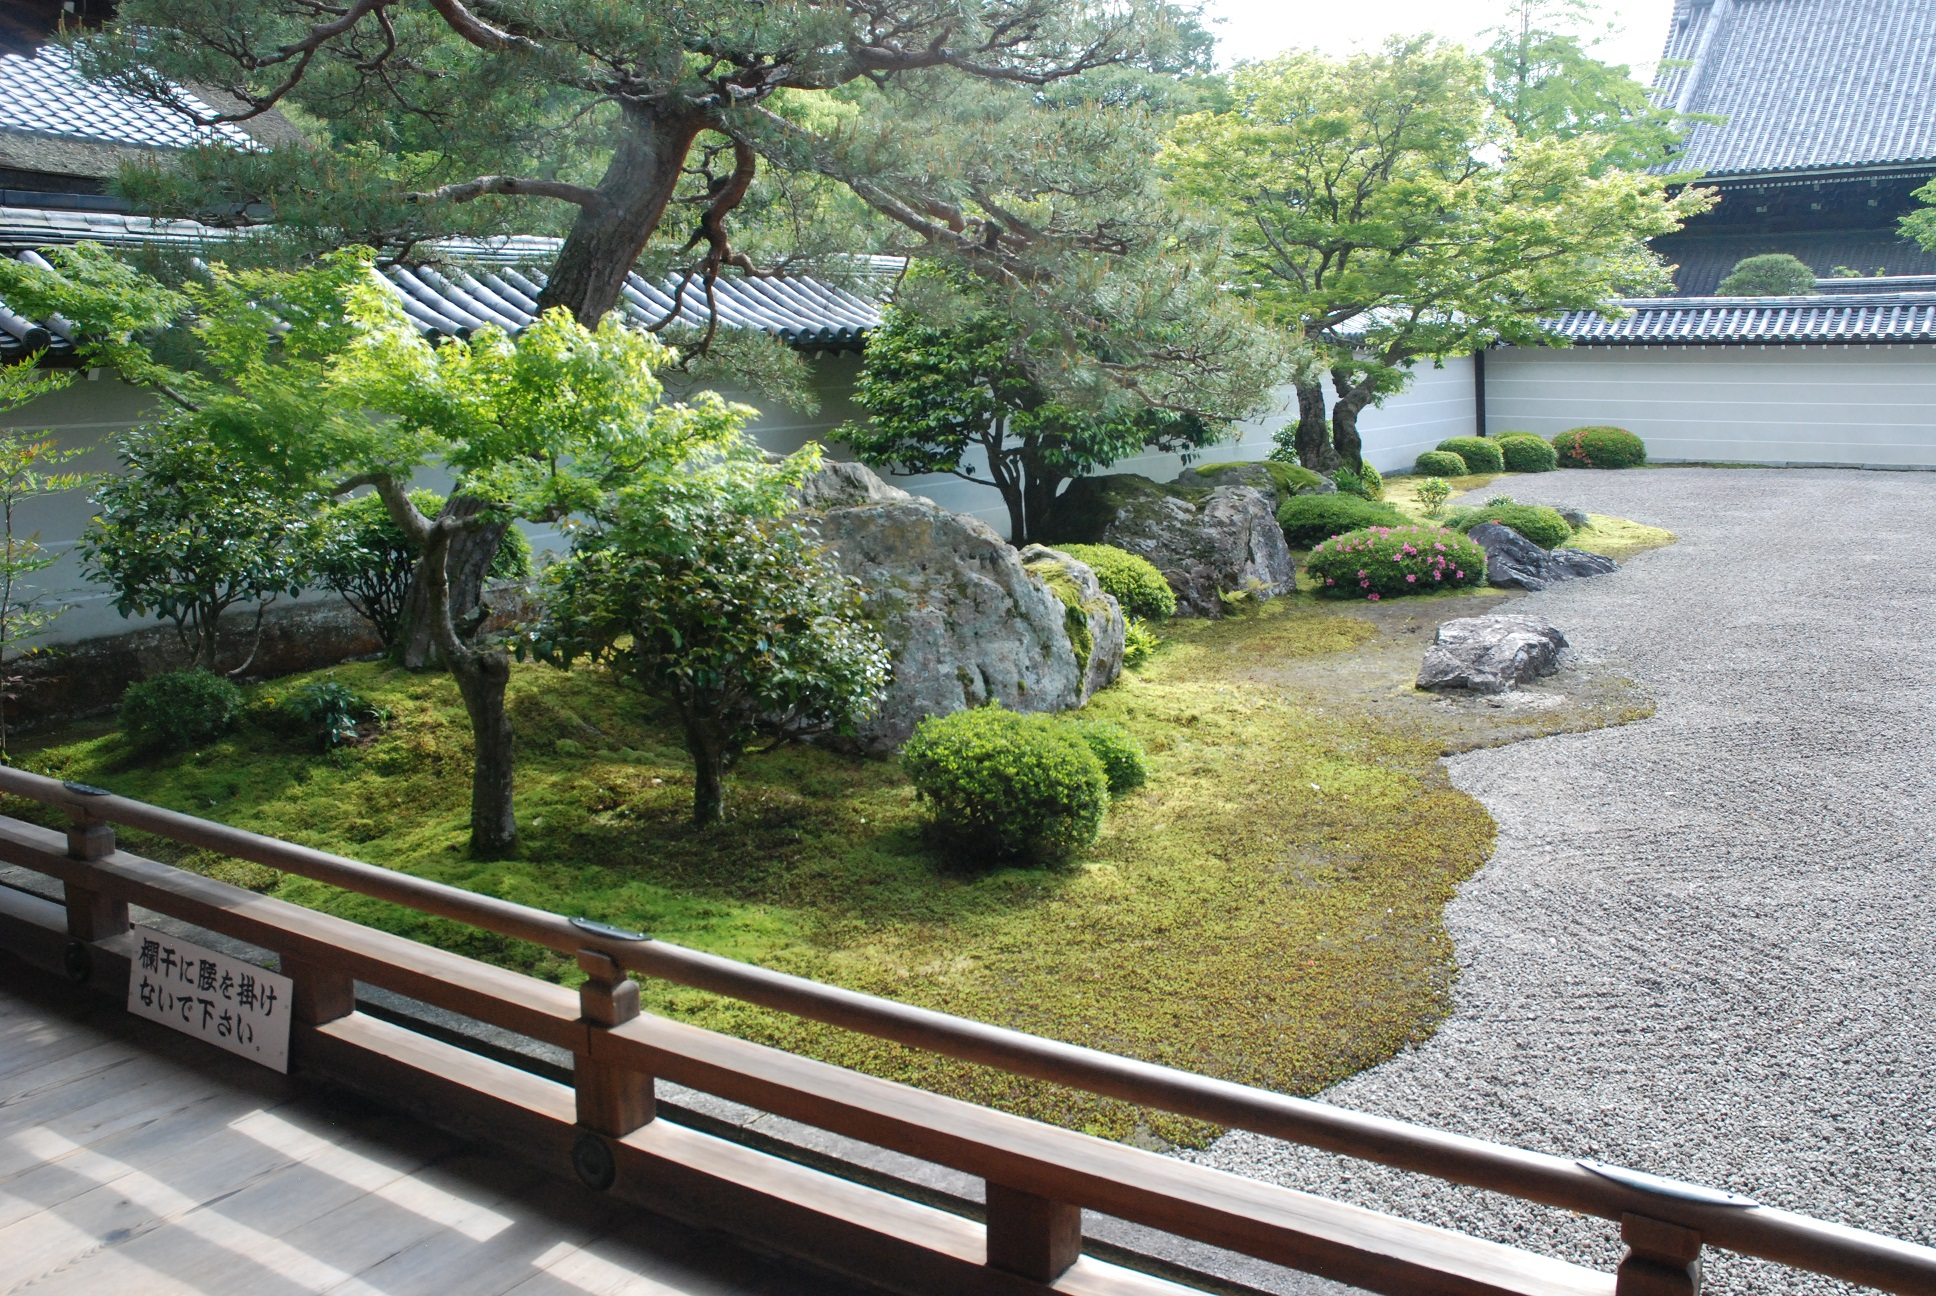 The abbot's garden at Nanzen-ji temple, Kyoto. Photo by Kristin Faurest.